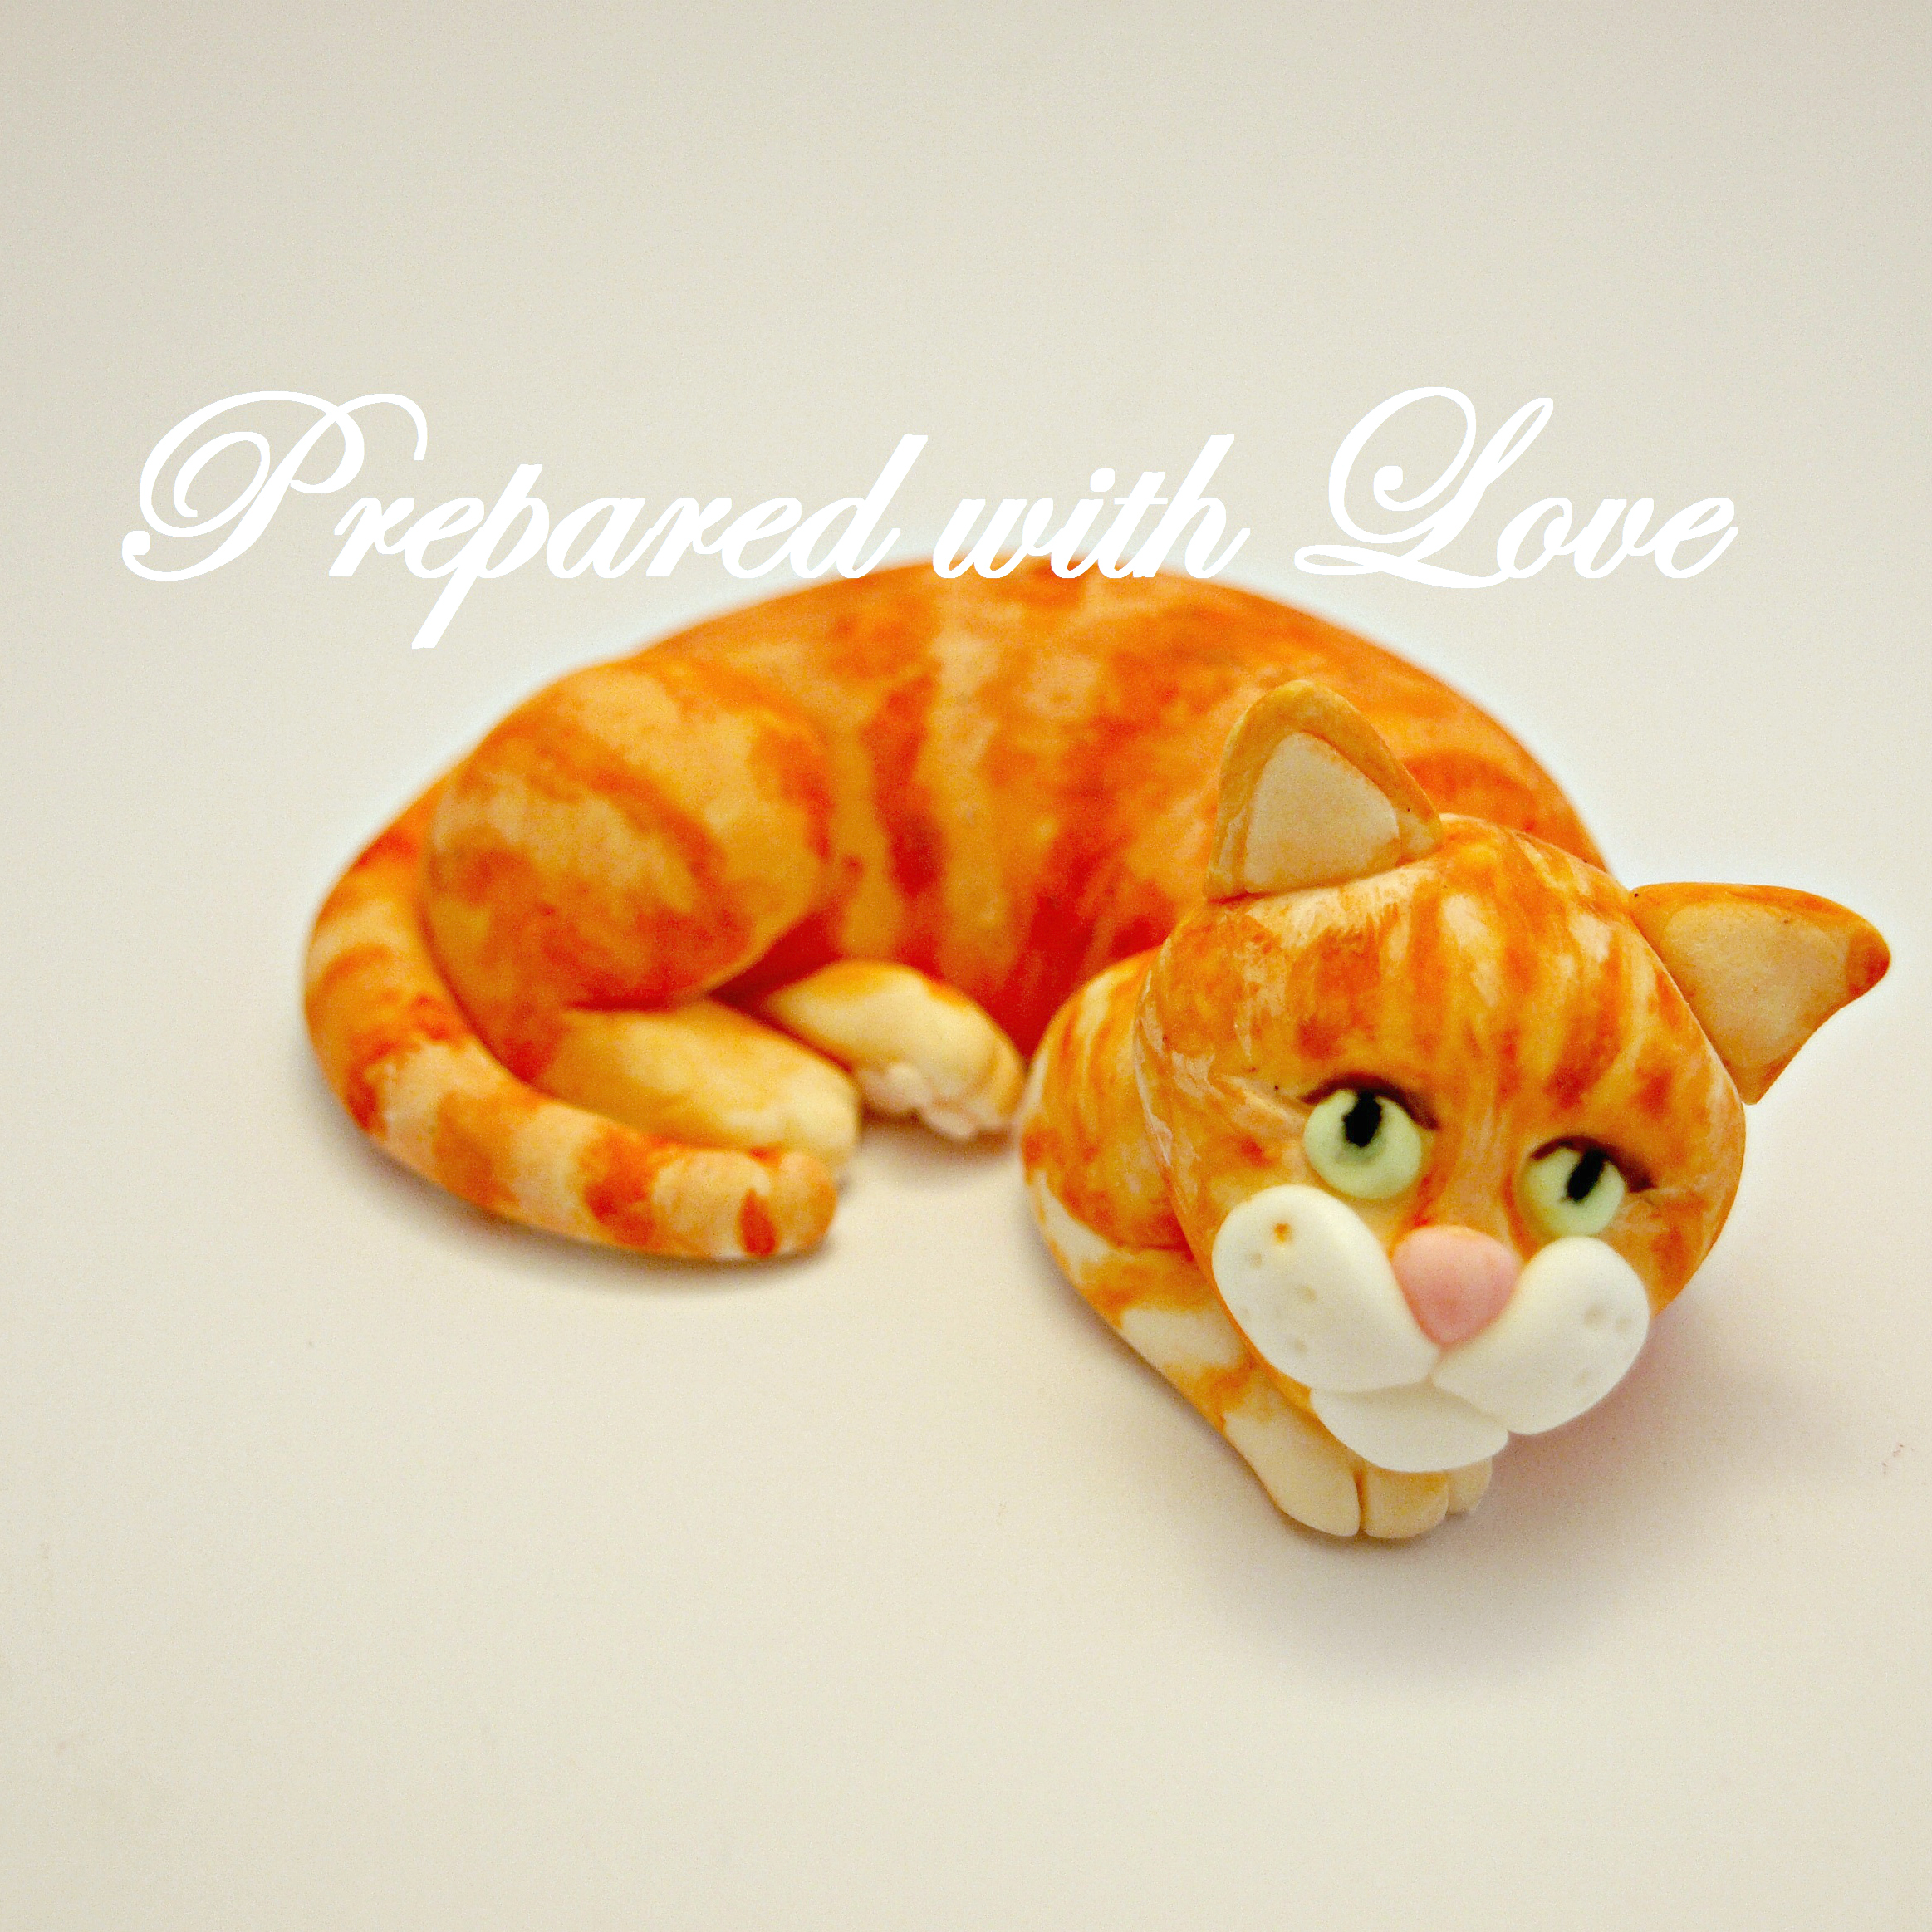 Ginger Cat Cake Topper Prepared With Love